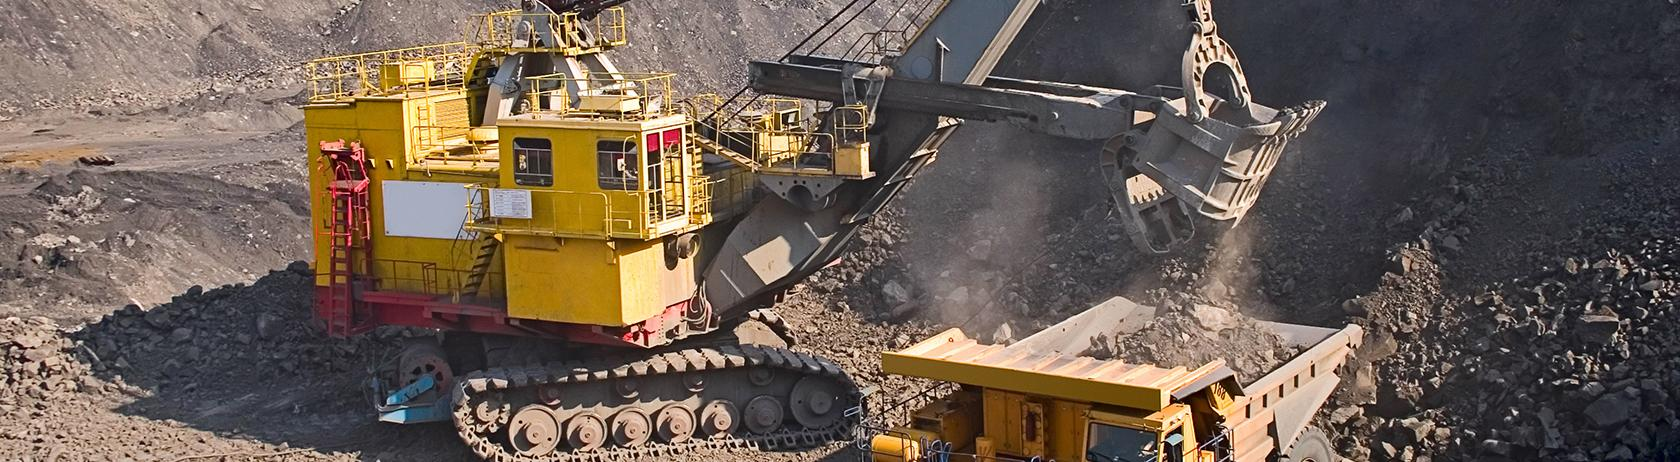 Construction and mining vehicles